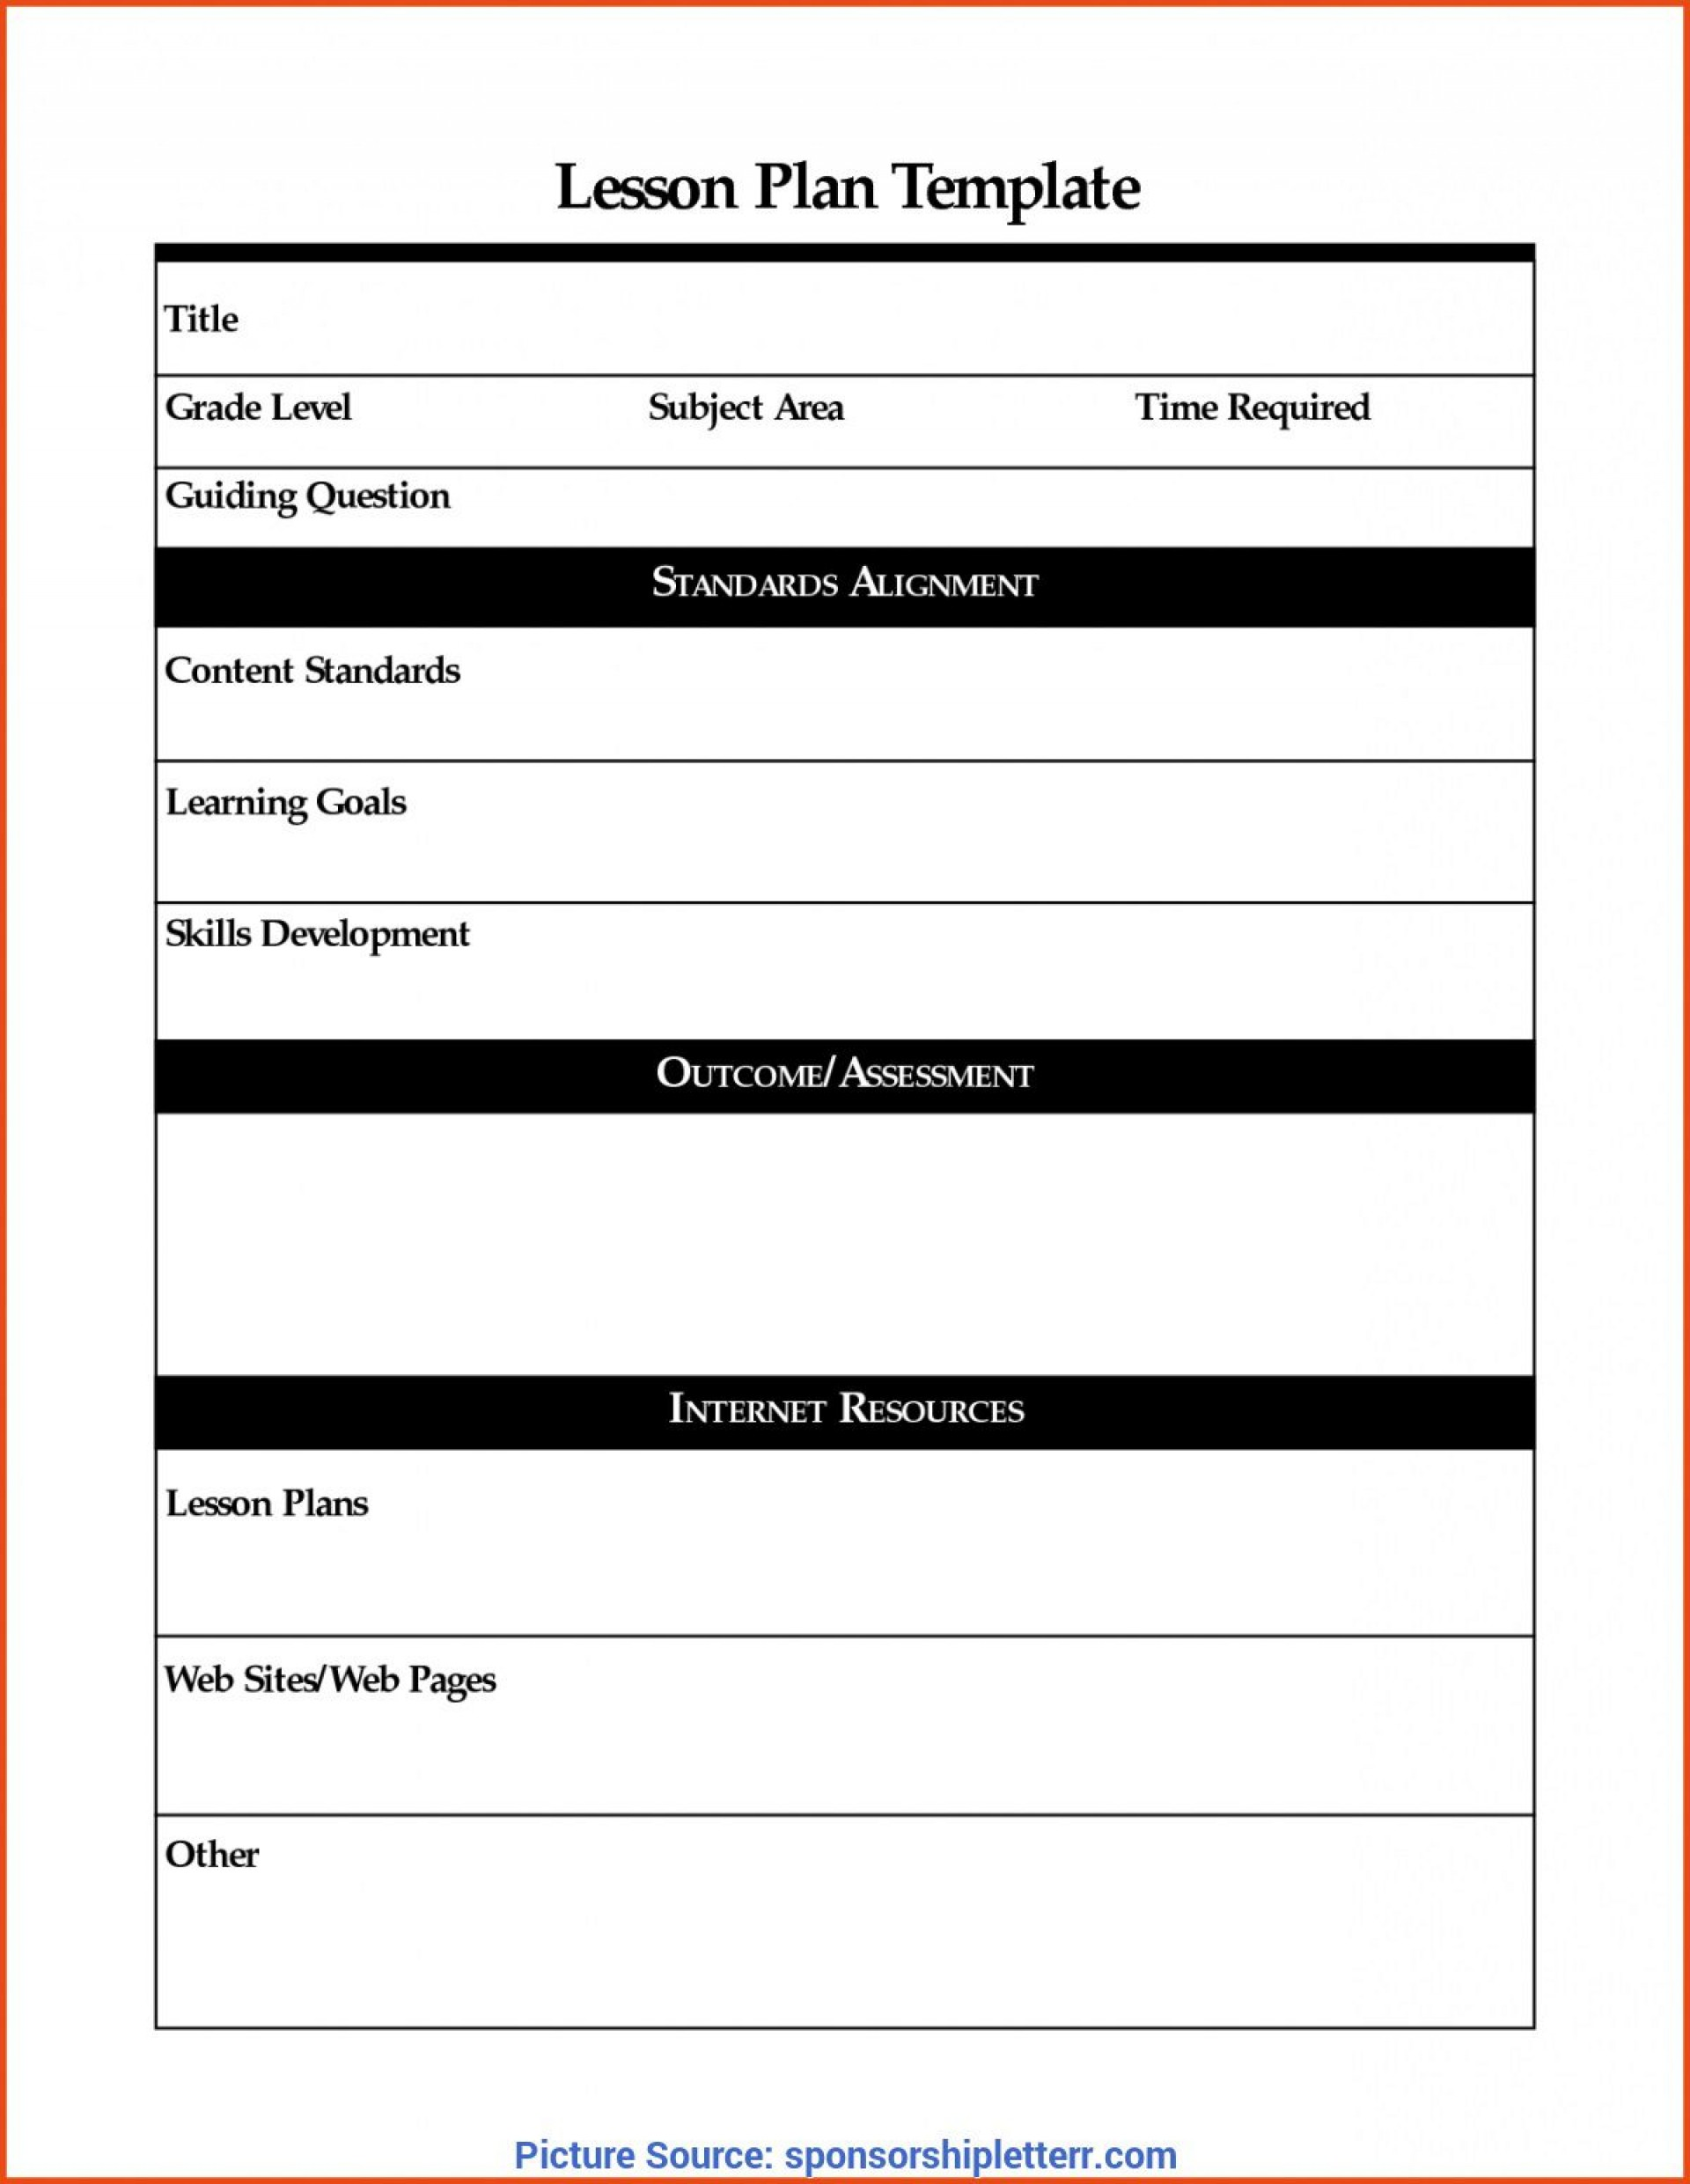 008 Exceptional Lesson Plan Template Word Picture  Weekly Free Preschool1920